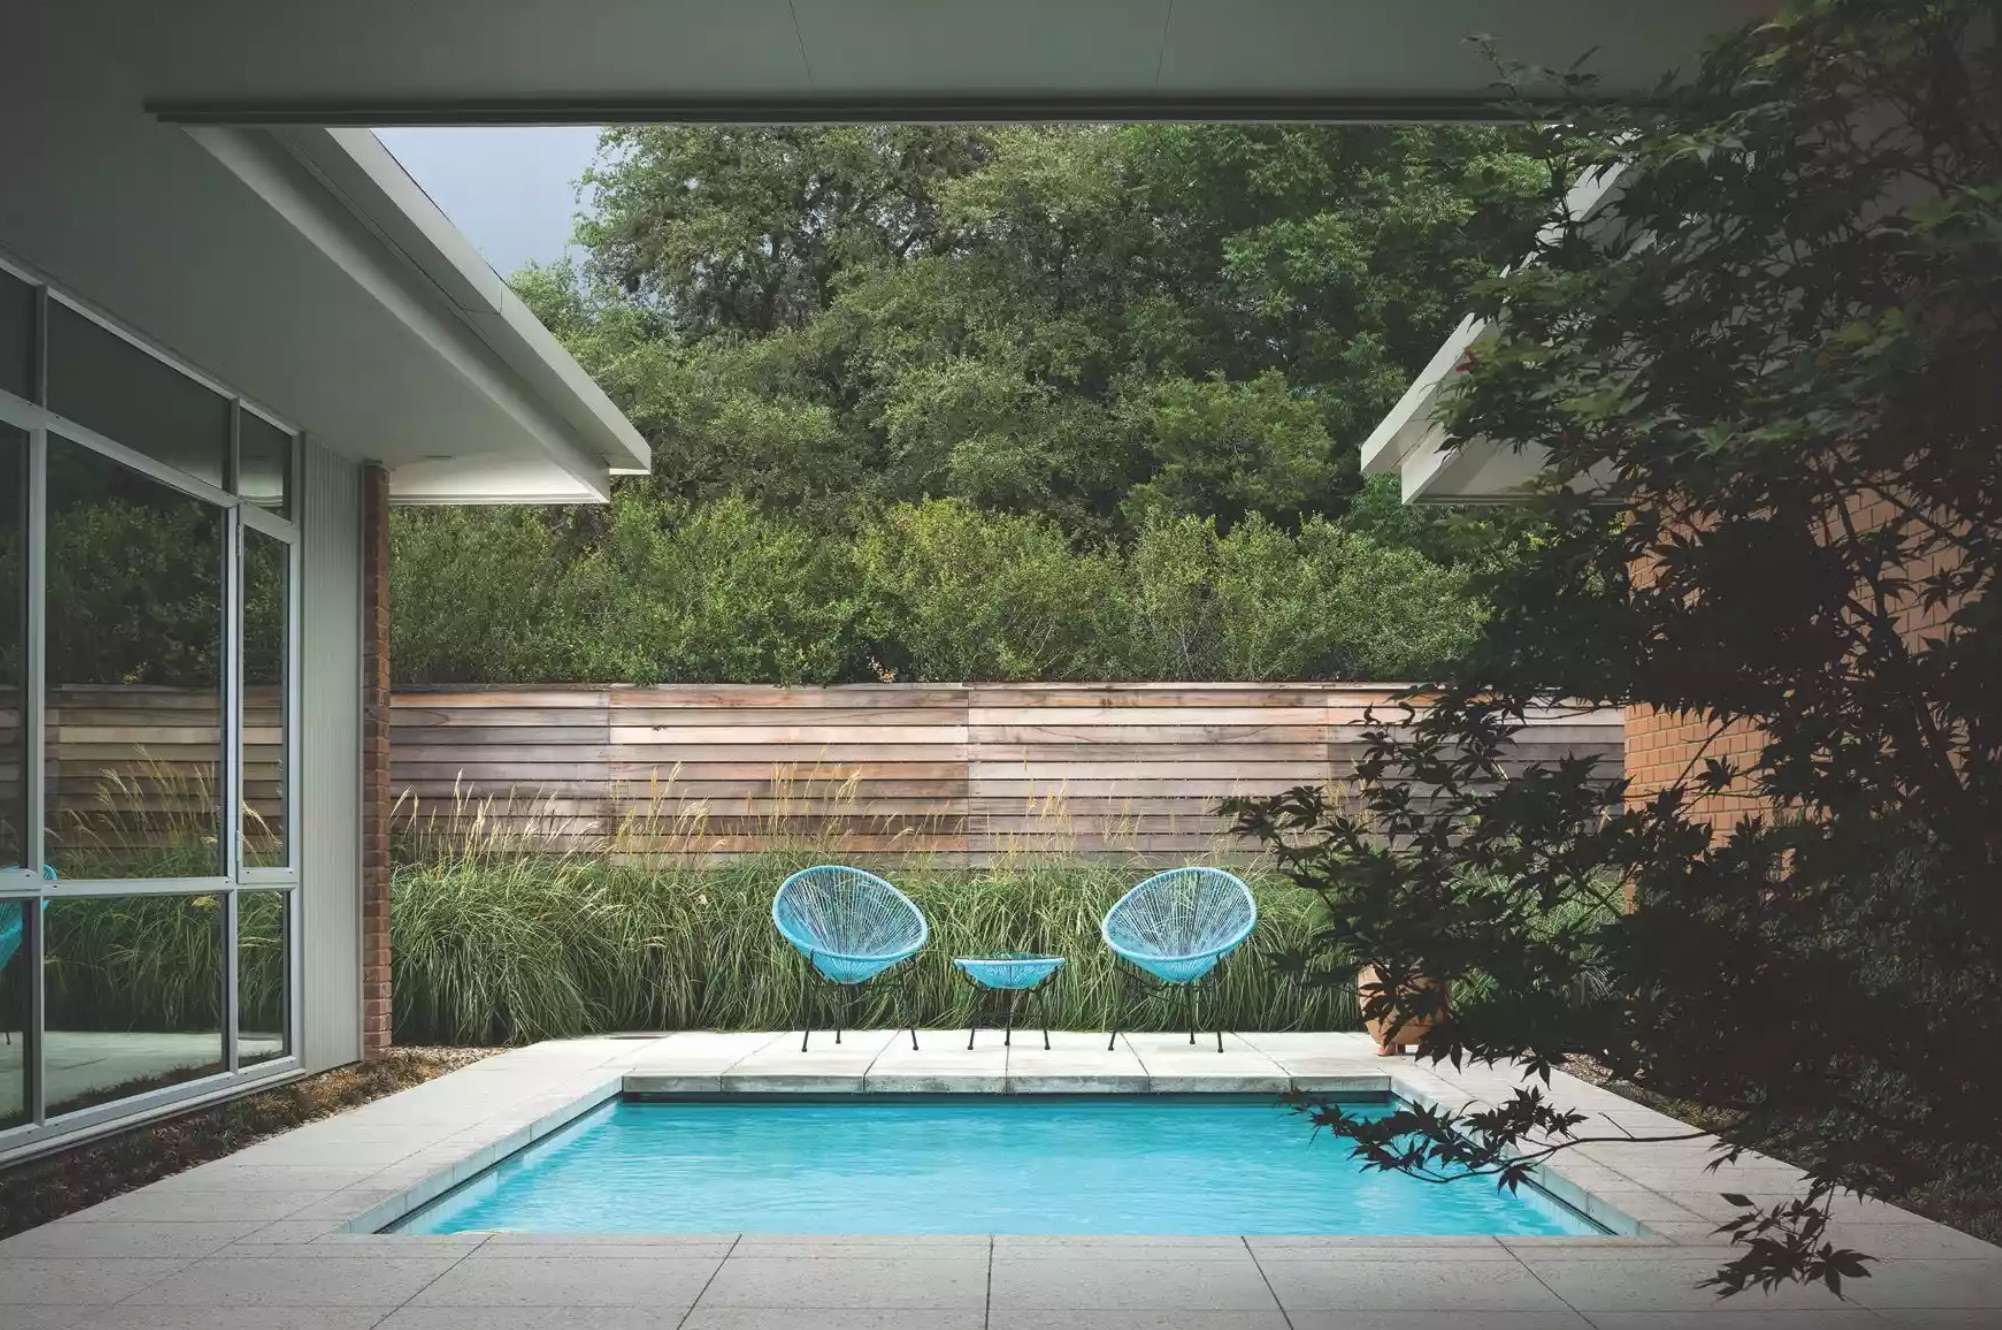 Mid-century style home with a small pool